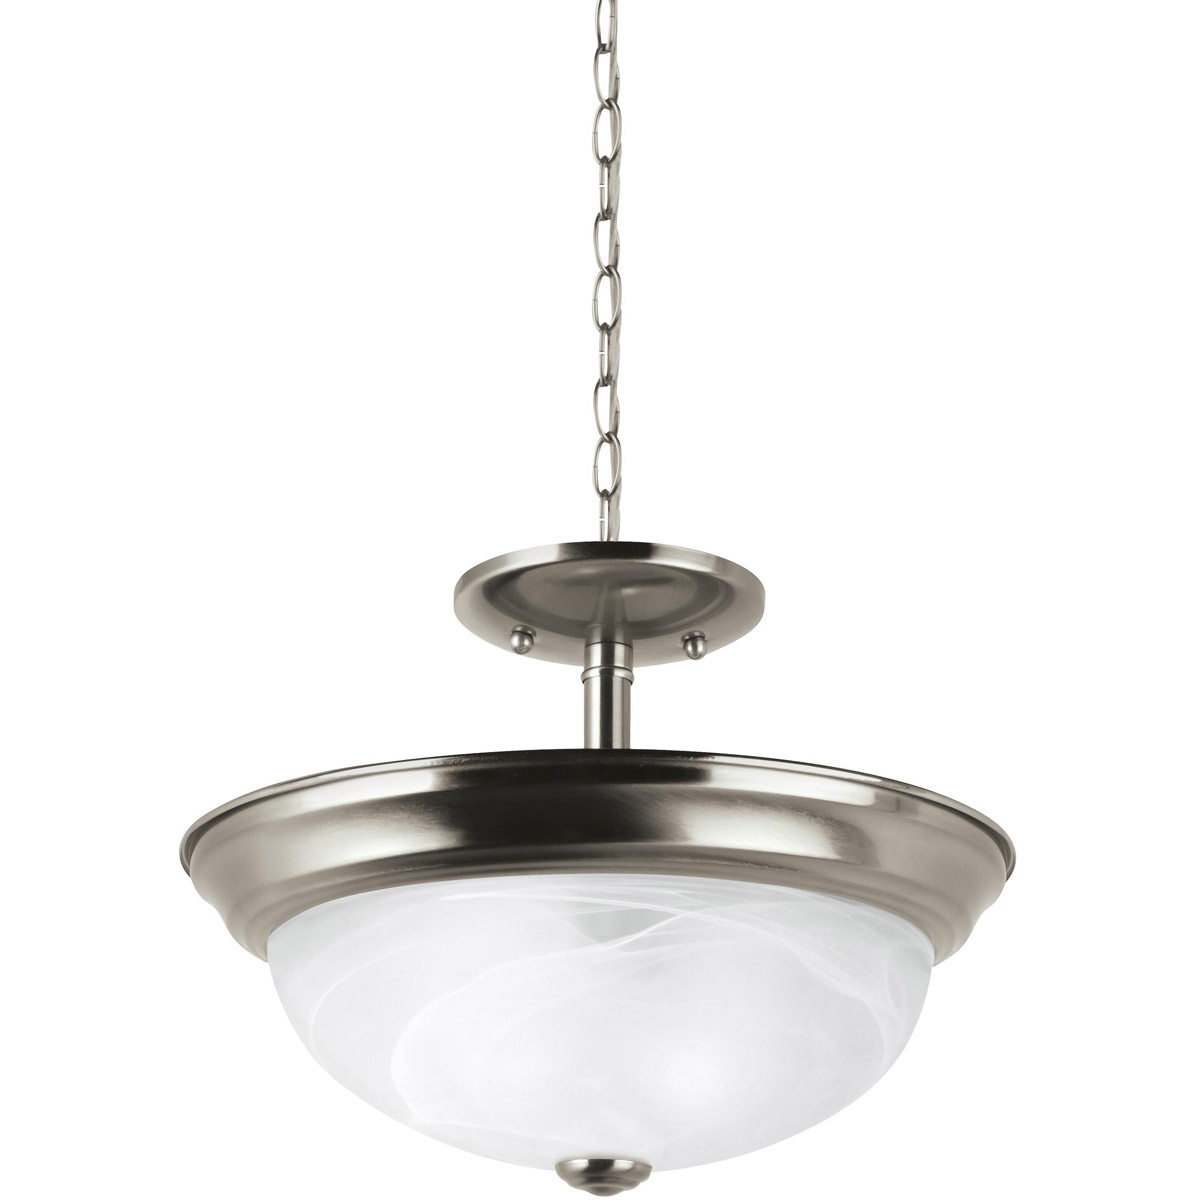 Sea Gull Lighting Windgate 2 Light Semi-Flush Mount in Brushed Nickel 77950-962 photo